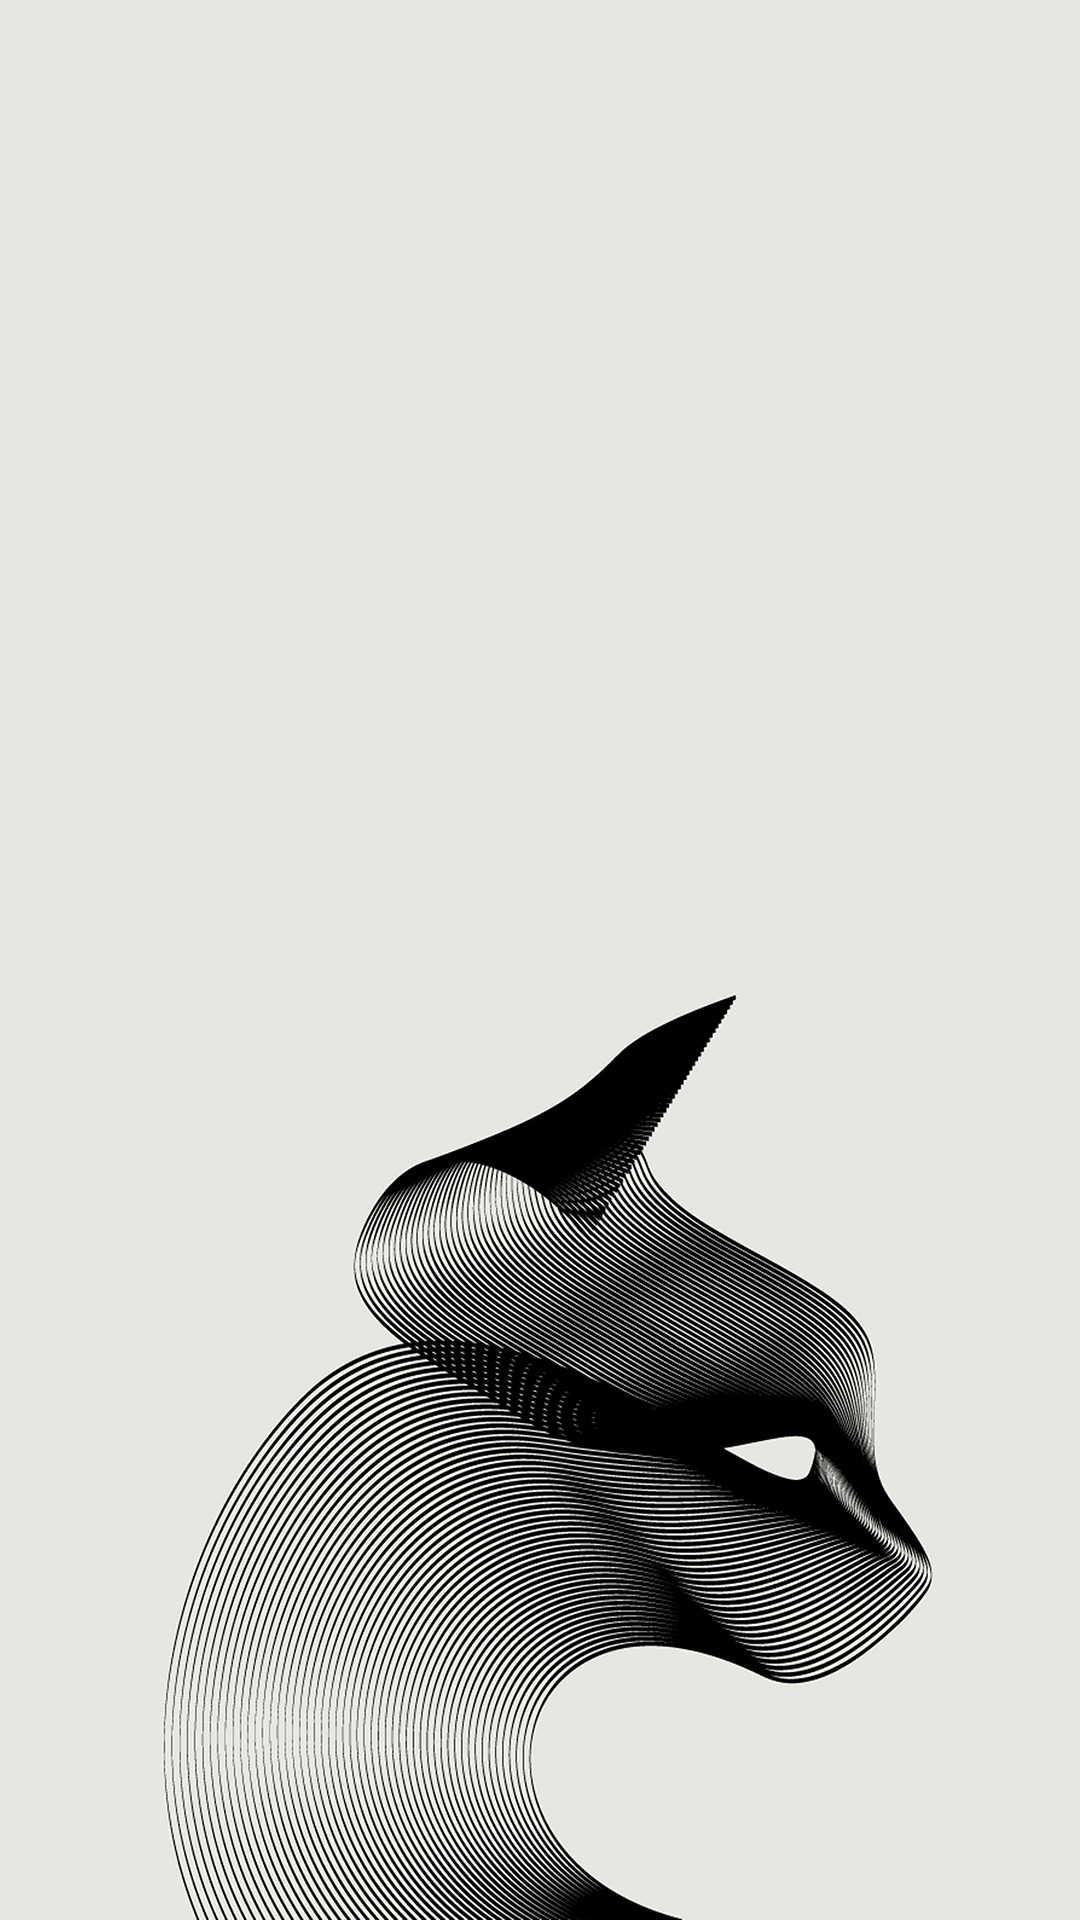 cat-in-lines-mobile-wallpaper-minimalist-3072x4096